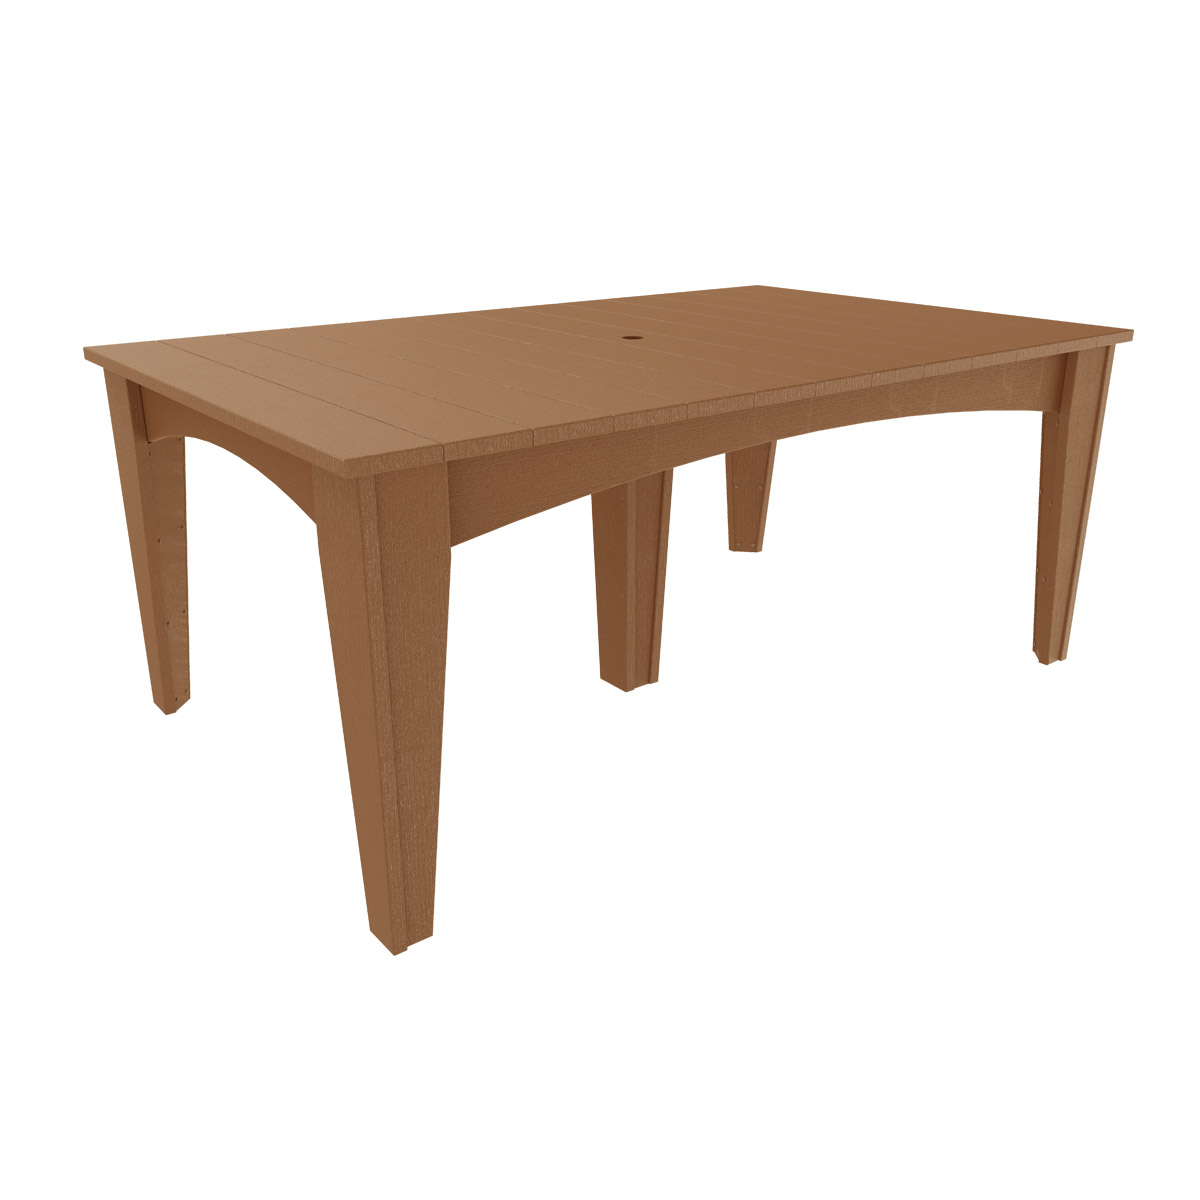 Island dining table 44 x 72 rectangular luxcraft - Luxcraft fine outdoor furniture ...